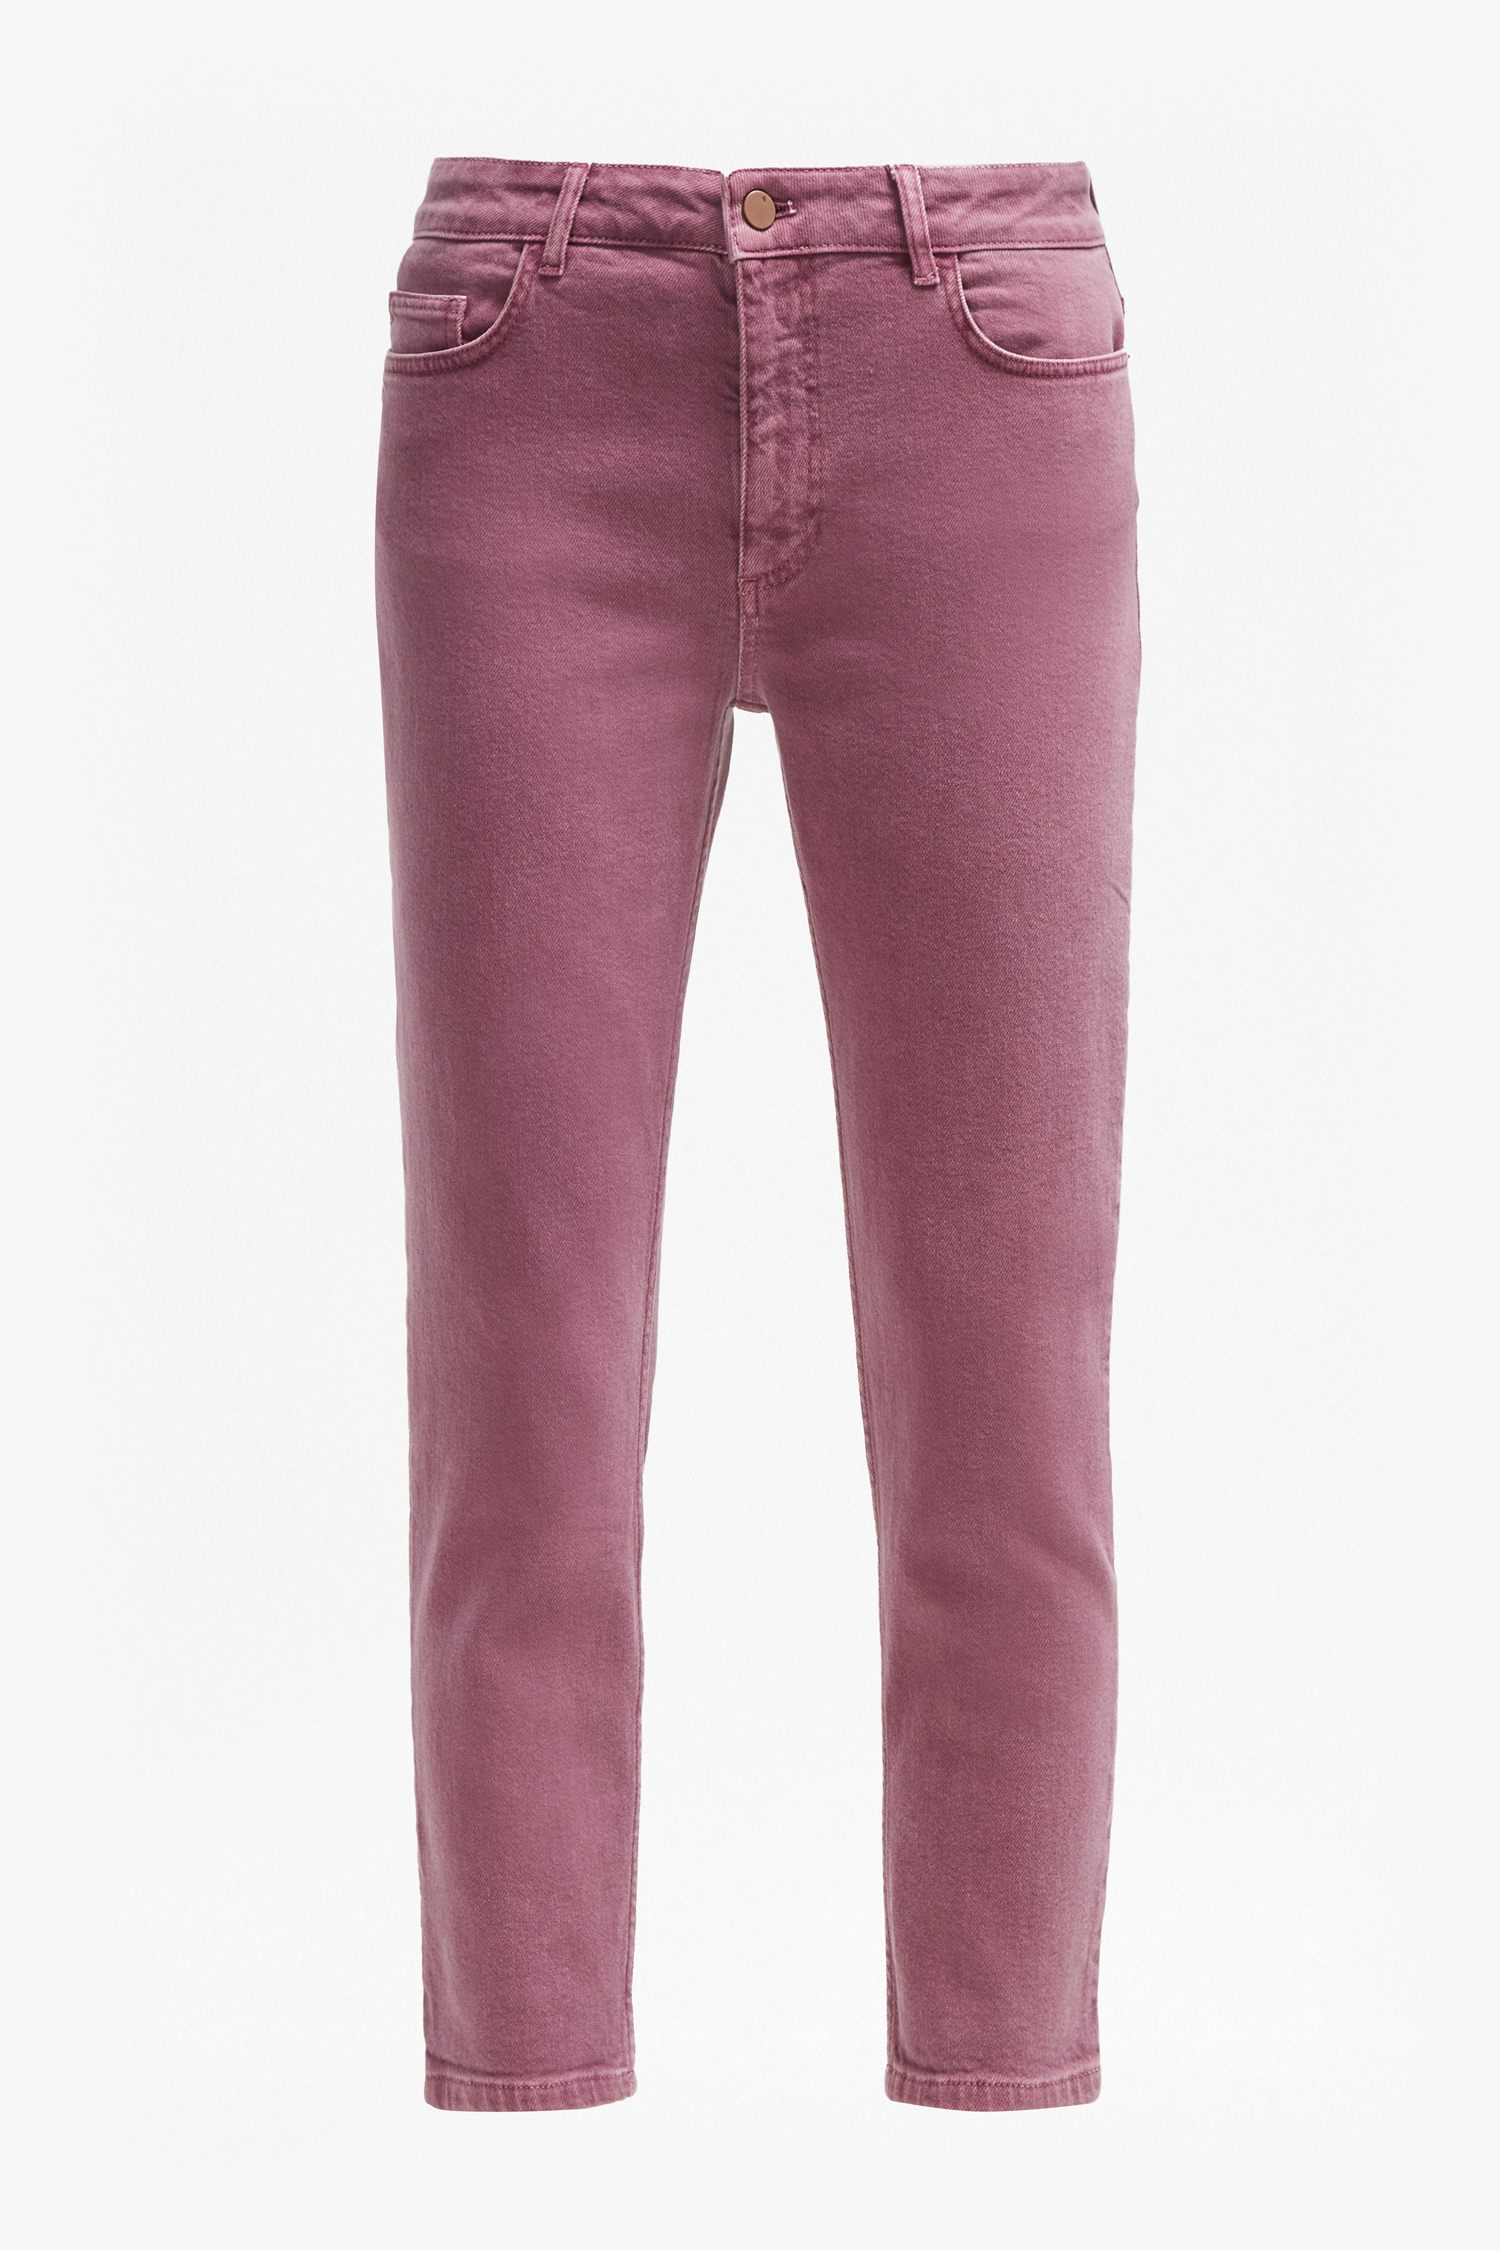 Antique Dye Relaxed Tapered Jeans - light baked cherry